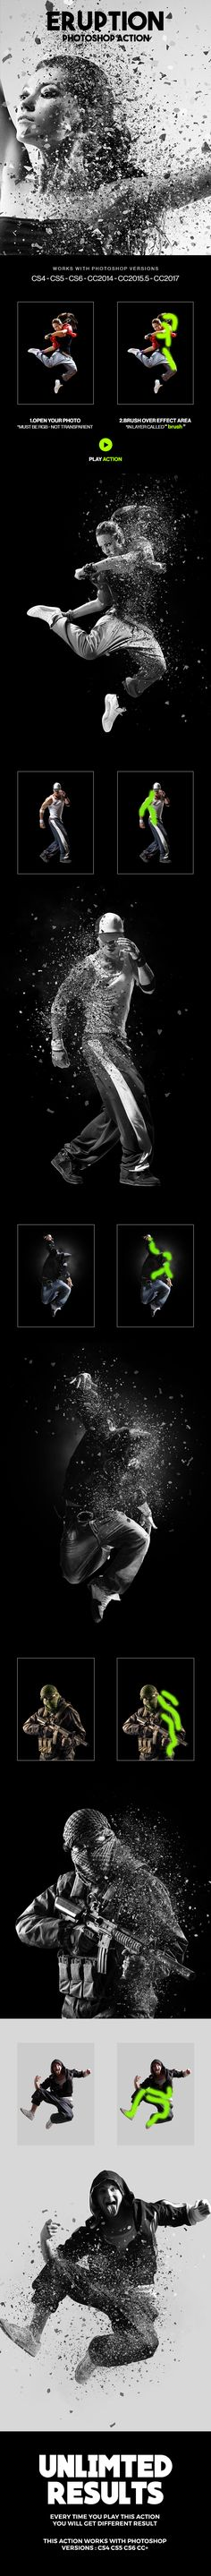 Eruption Photoshop Action — Photoshop ATN #photoshop #artistic • Download ➝ https://graphicriver.net/item/eruption-photoshop-action/20164559?ref=pxcr